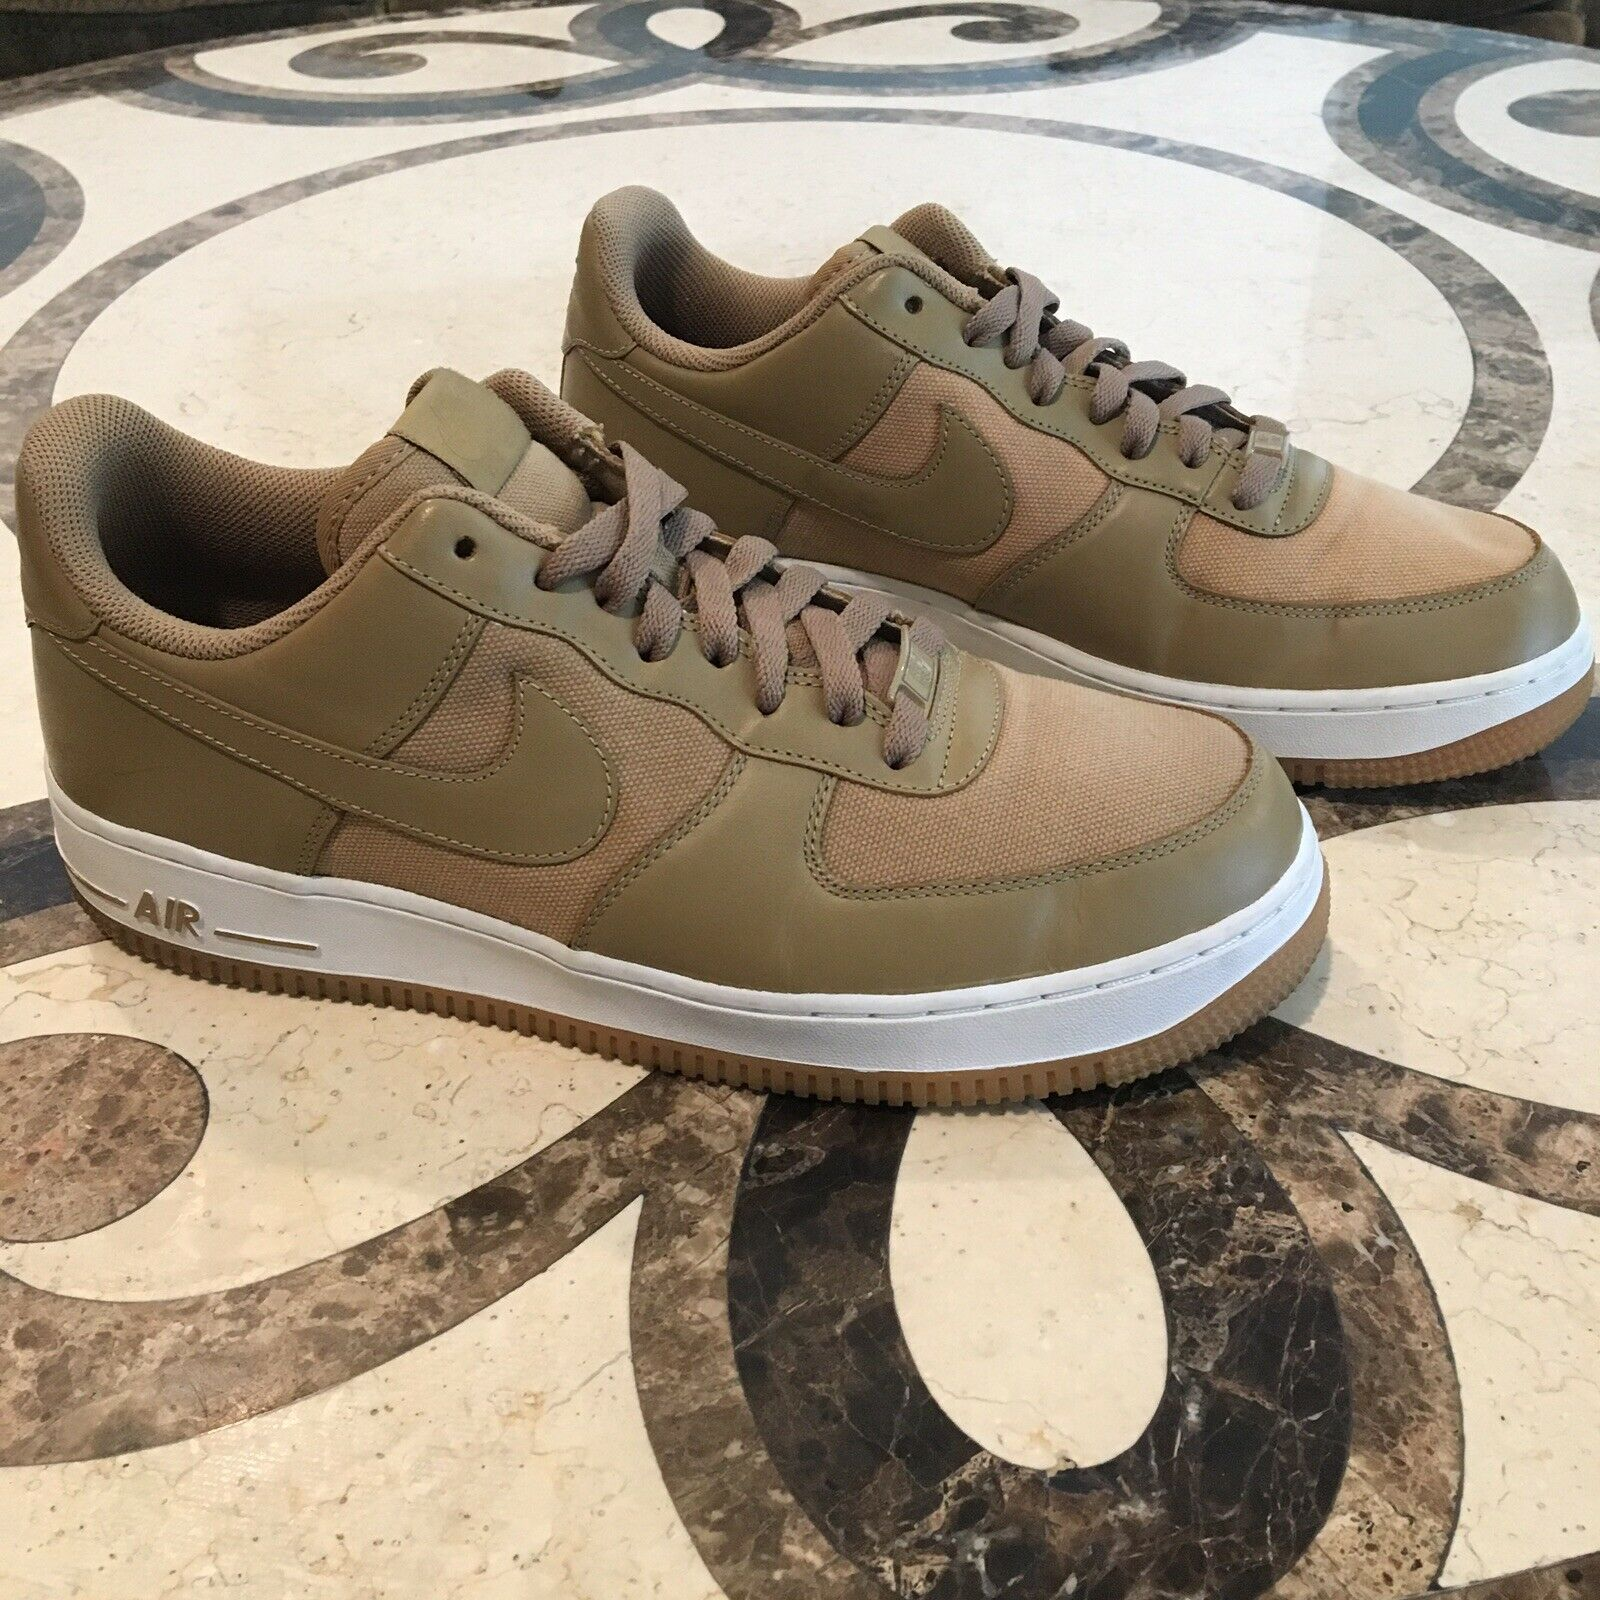 Airforce 1 RARE 2011 Size 10.5 Tan Olive Used